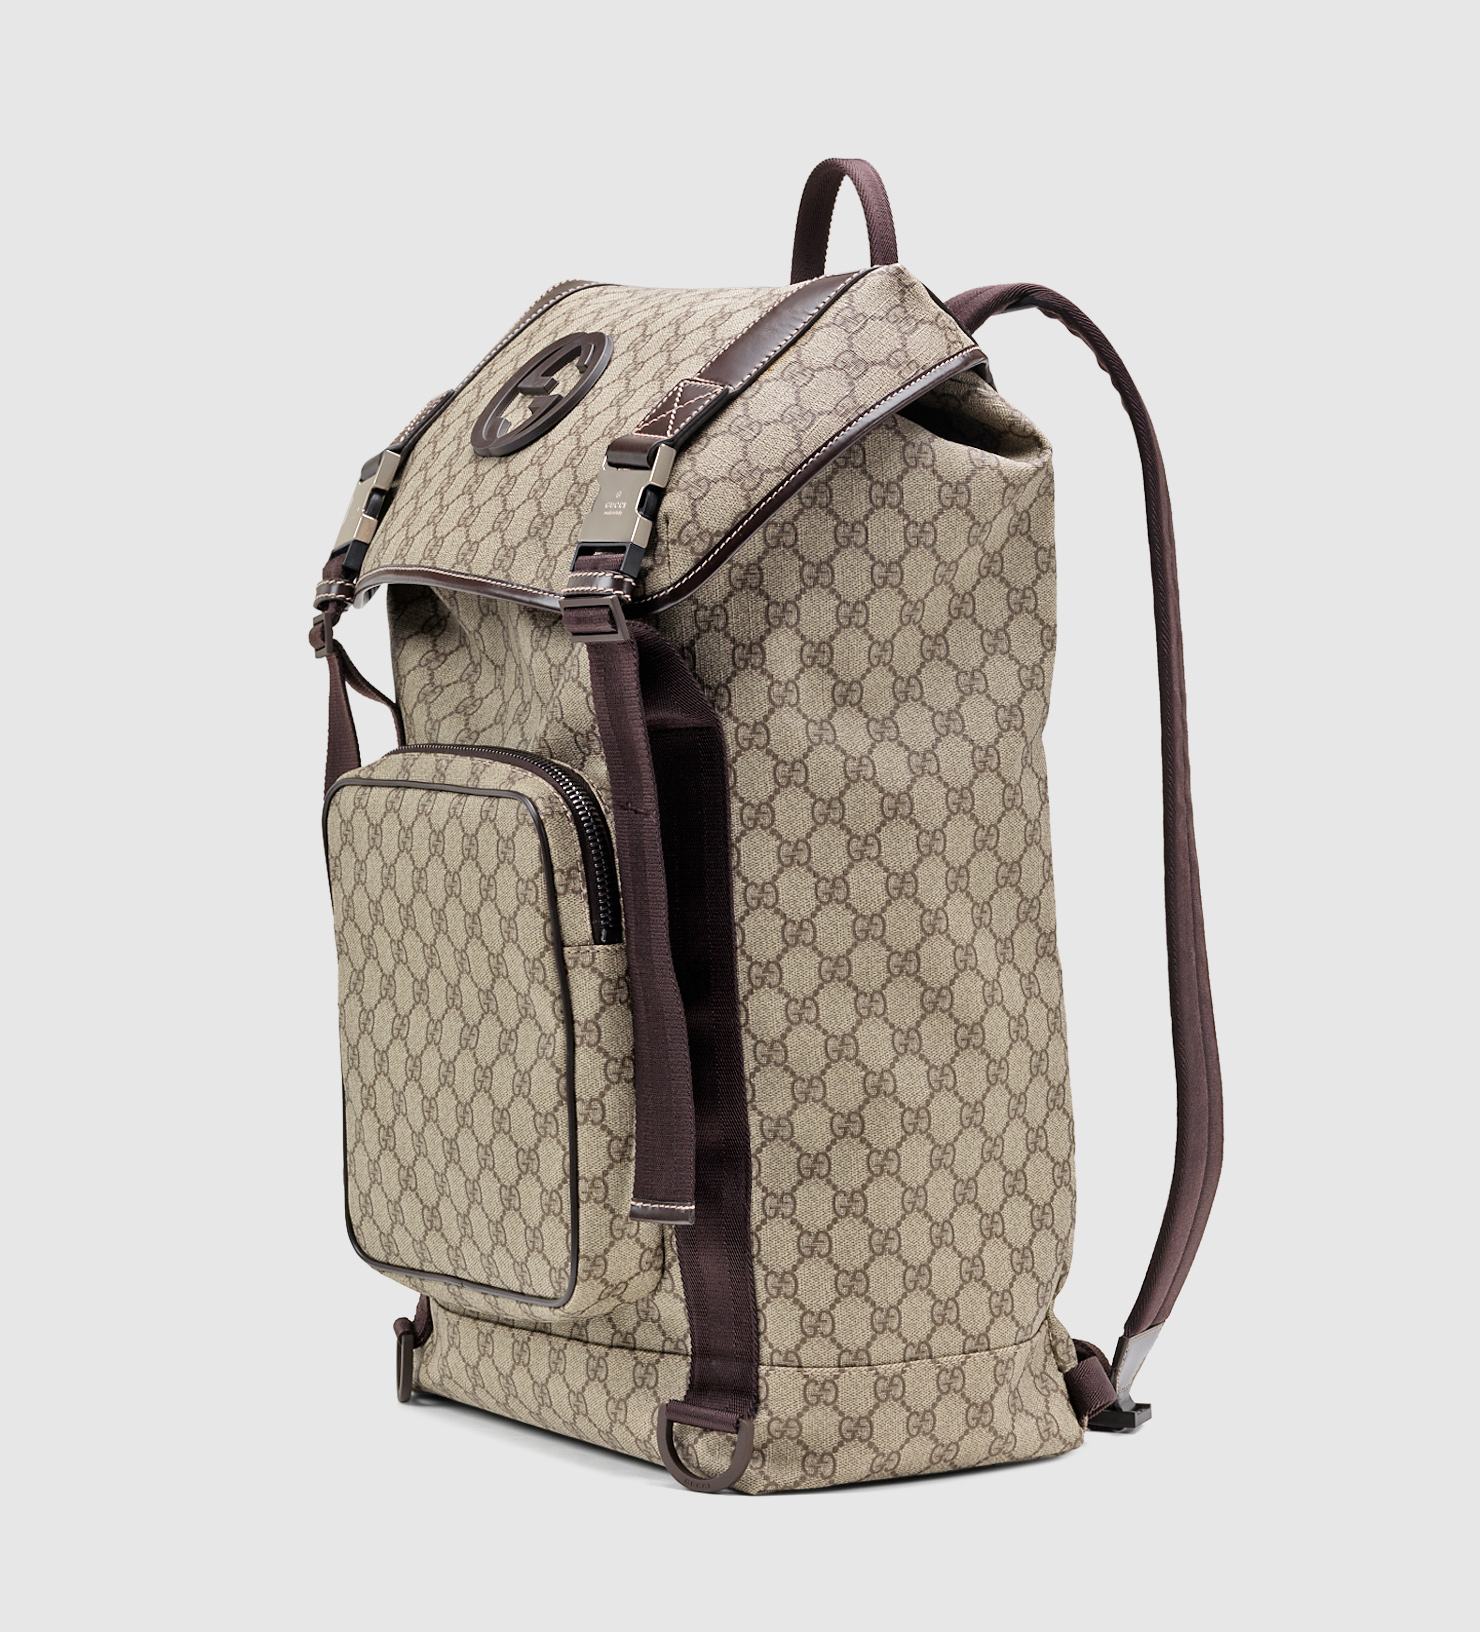 afaba1792dd Lyst - Gucci Gg Supreme Canvas Interlocking G Backpack in Natural ...